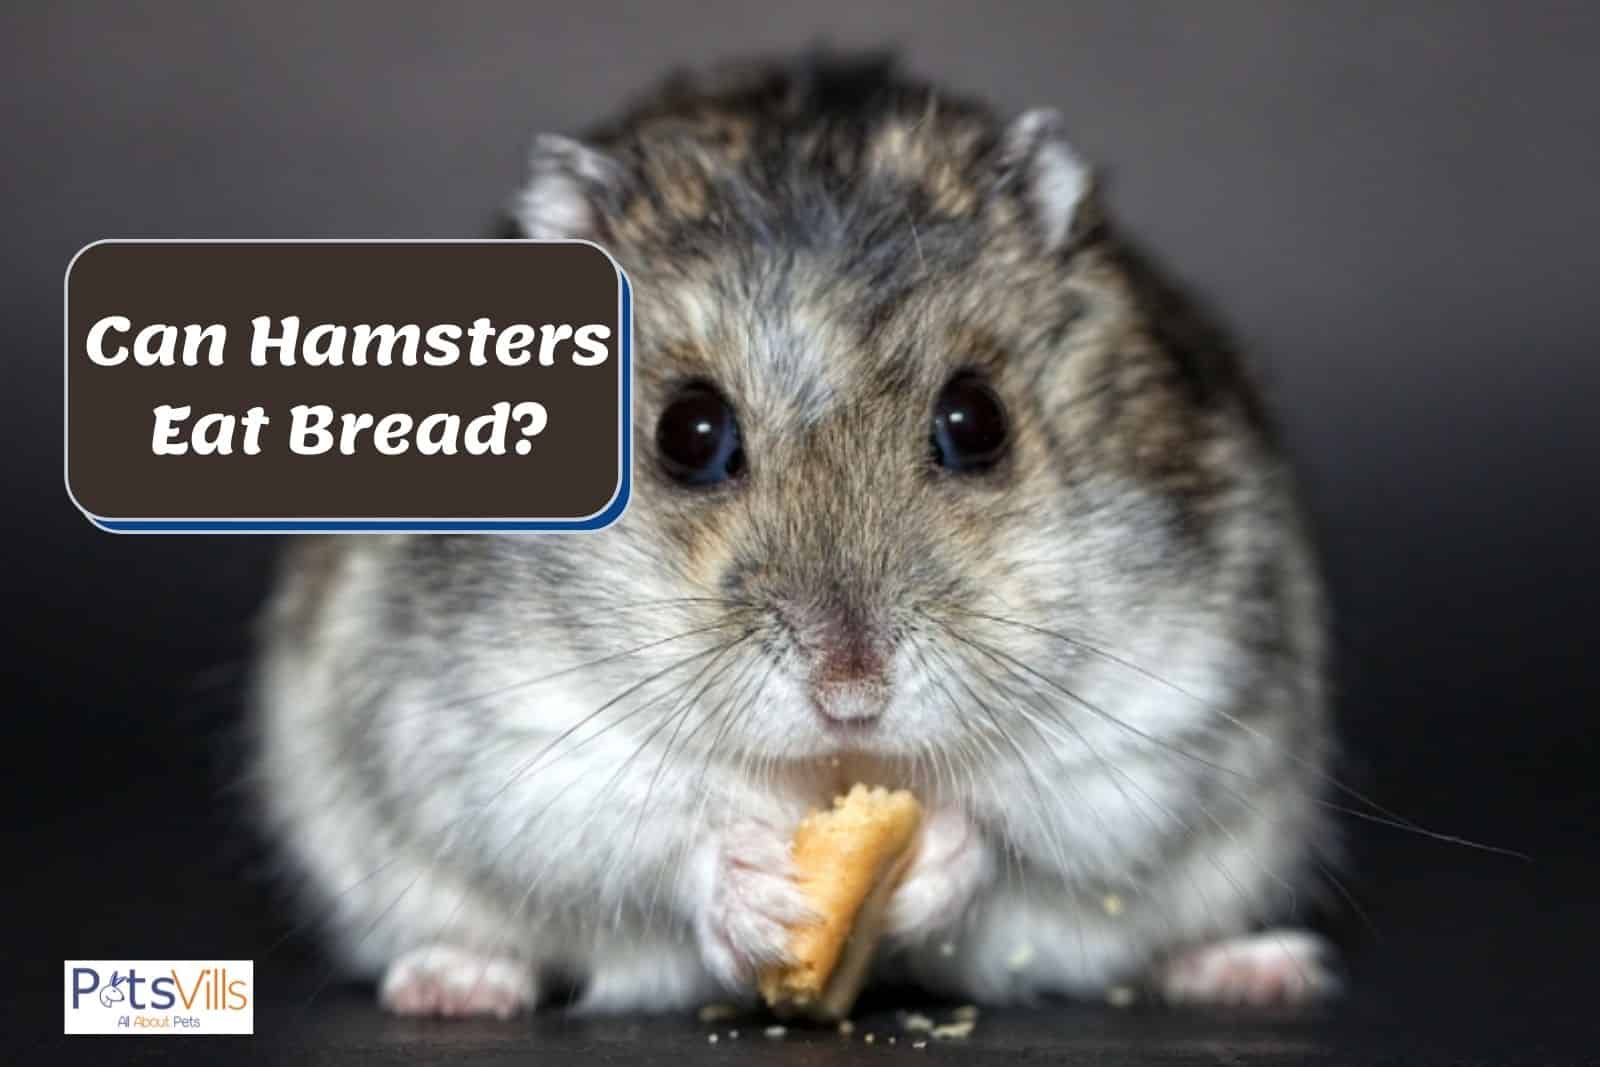 a hamster trying to eat bread, can hamsters eat bread